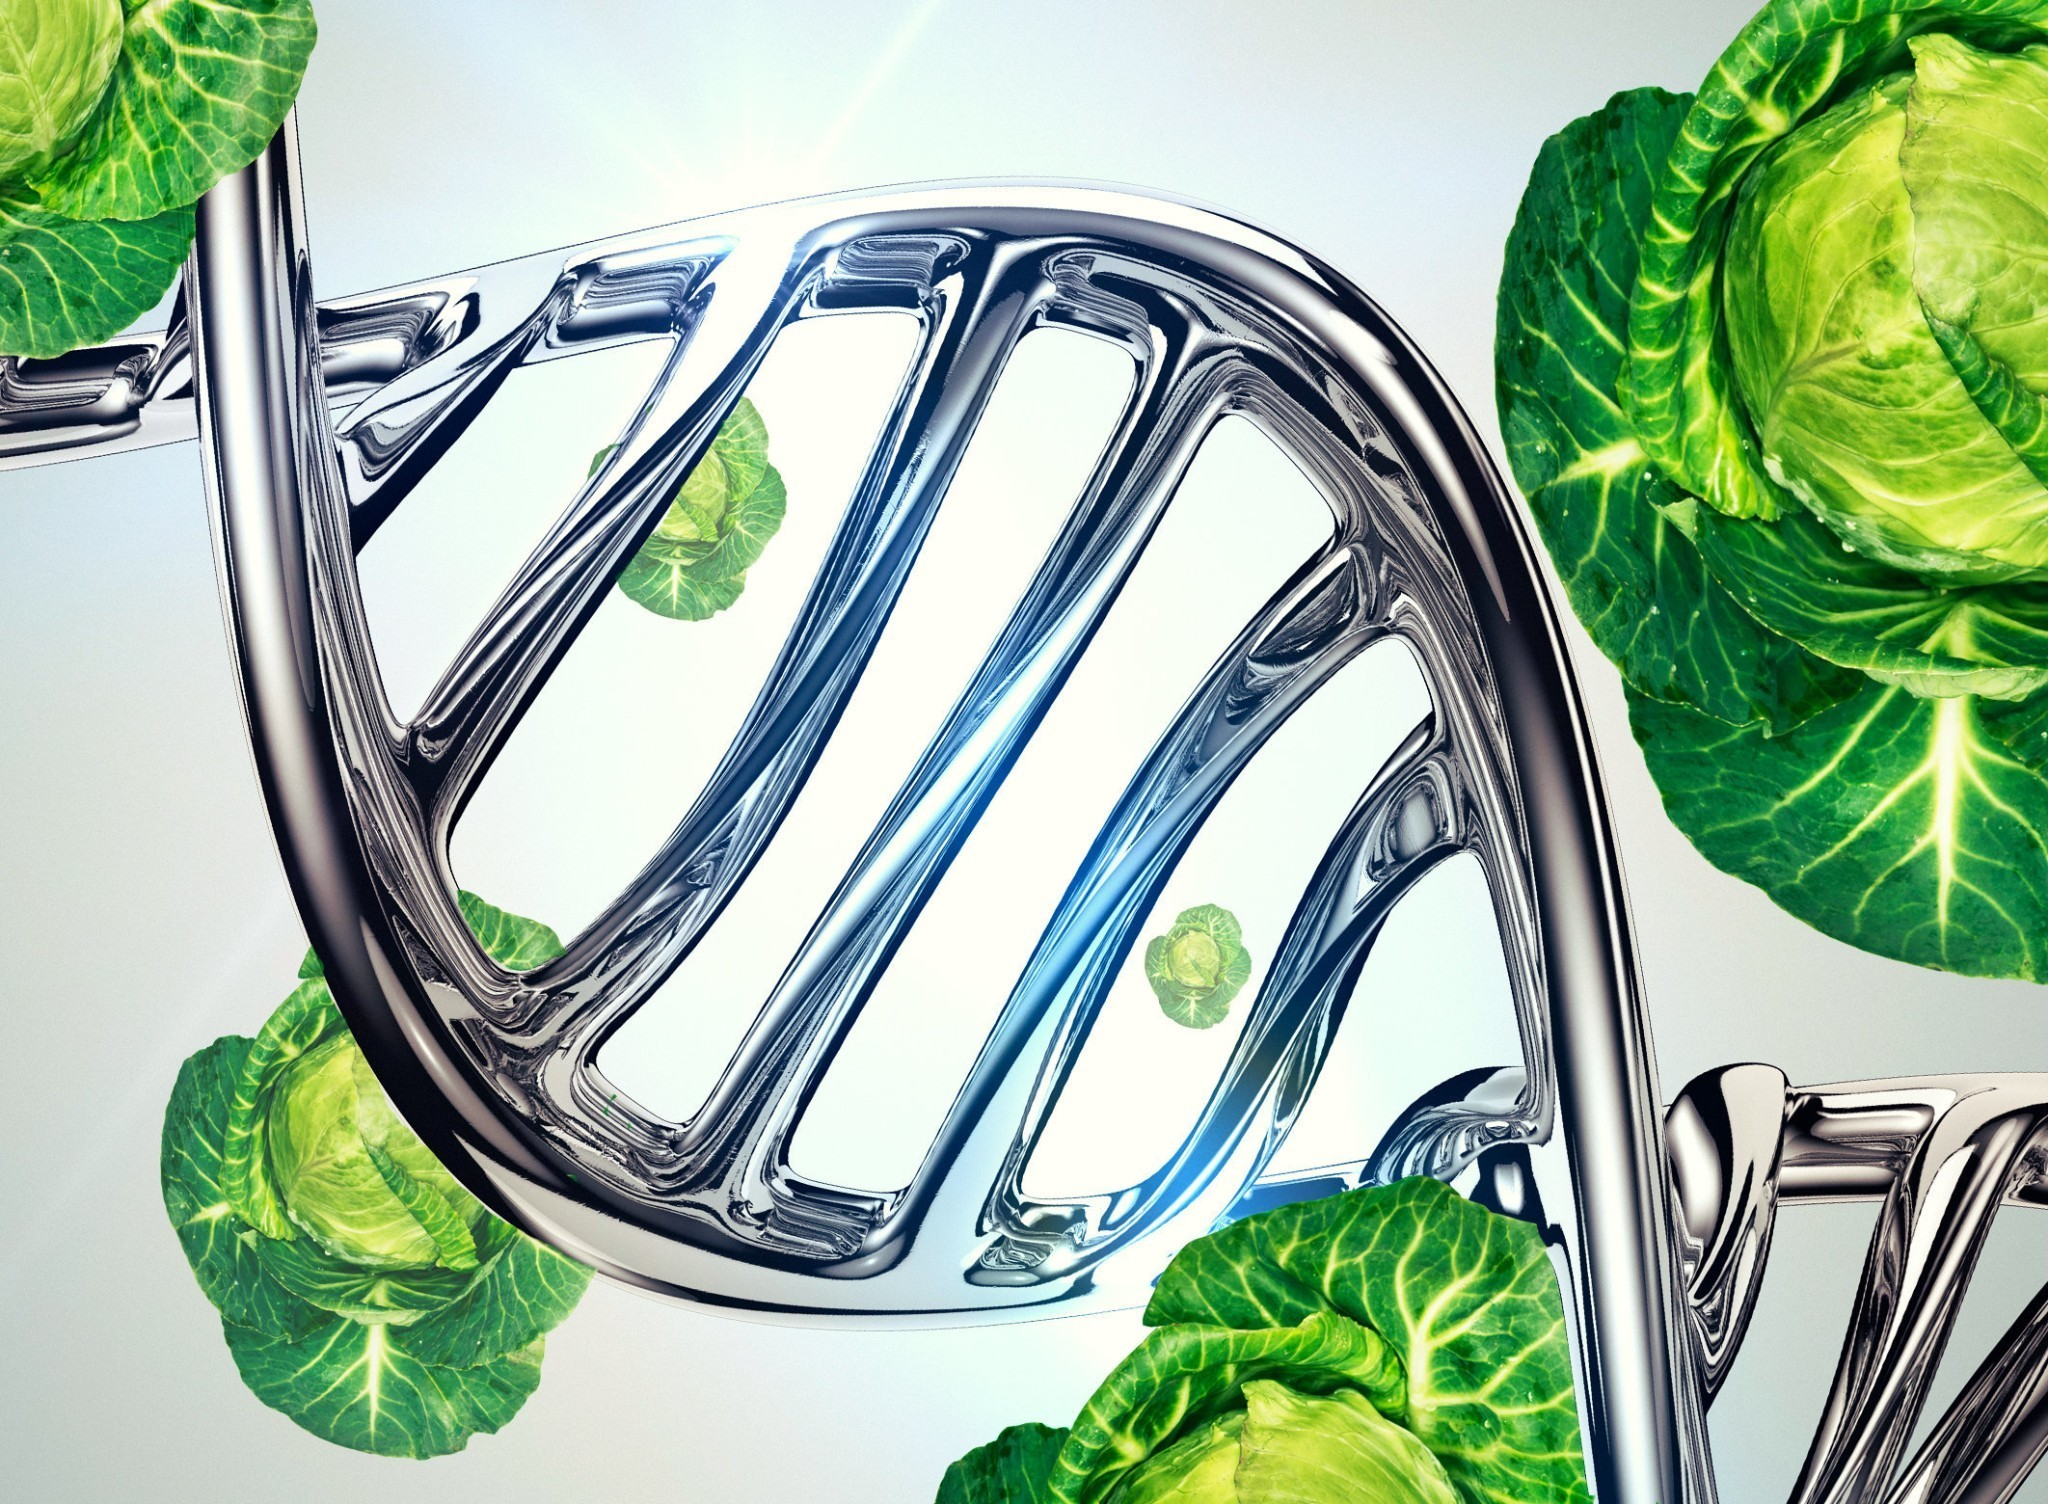 Can the perfect diet be decoded from your DNA?